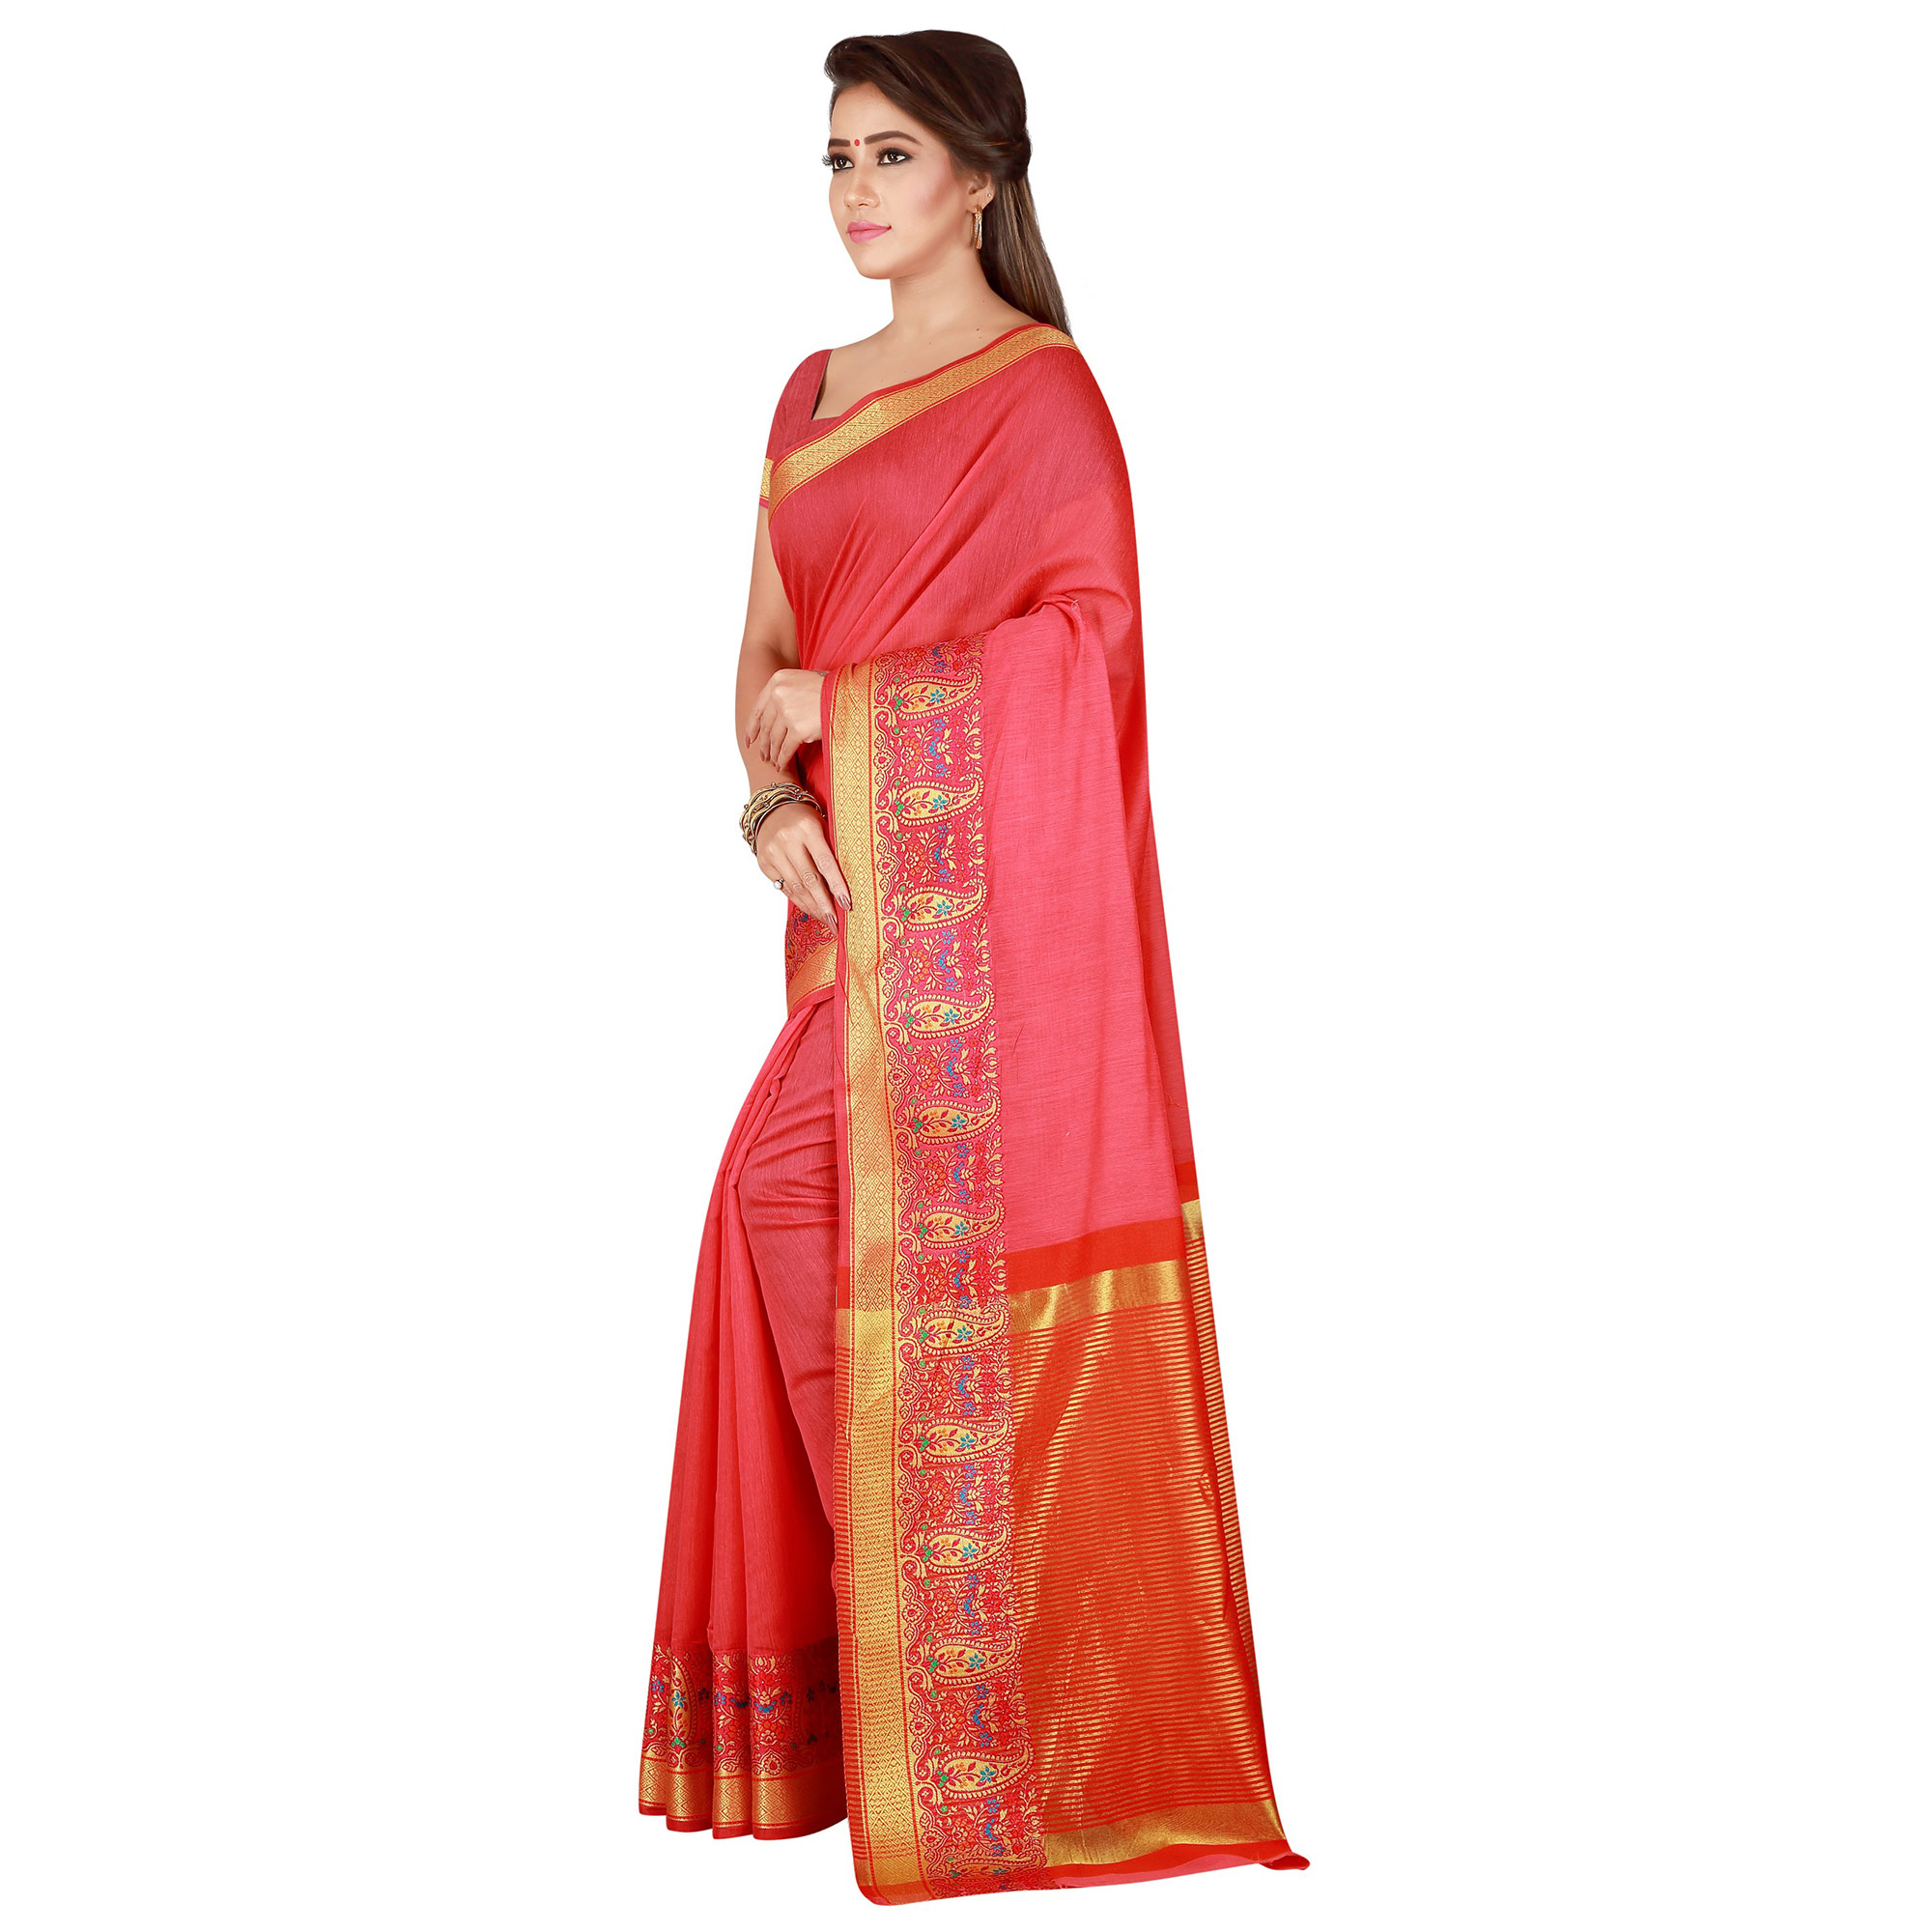 Adorning Pink Colored festive Wear Pure Cotton Saree